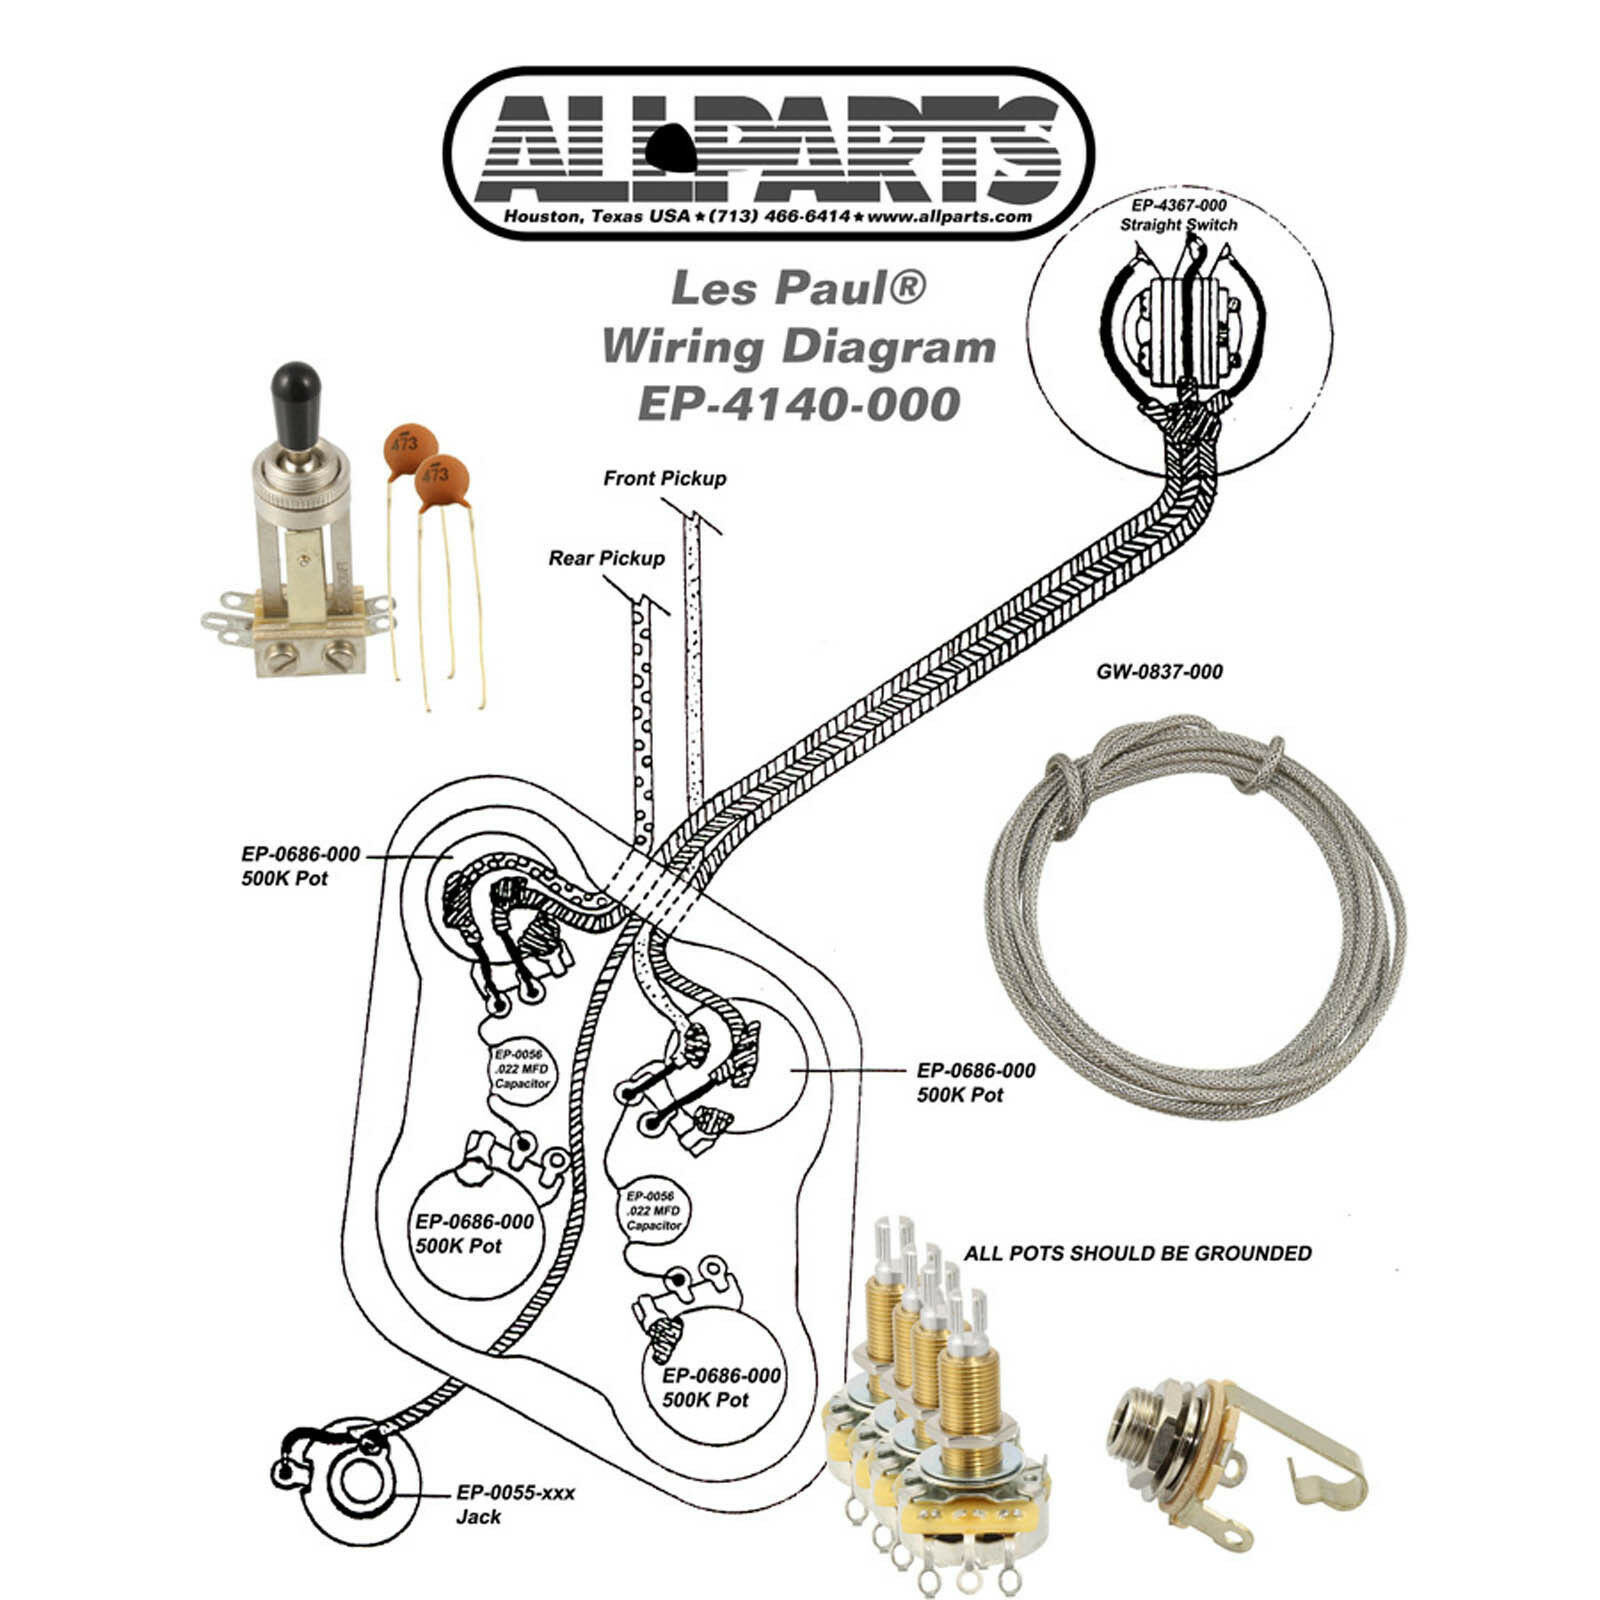 3 Pot Wiring Diagram Gibson